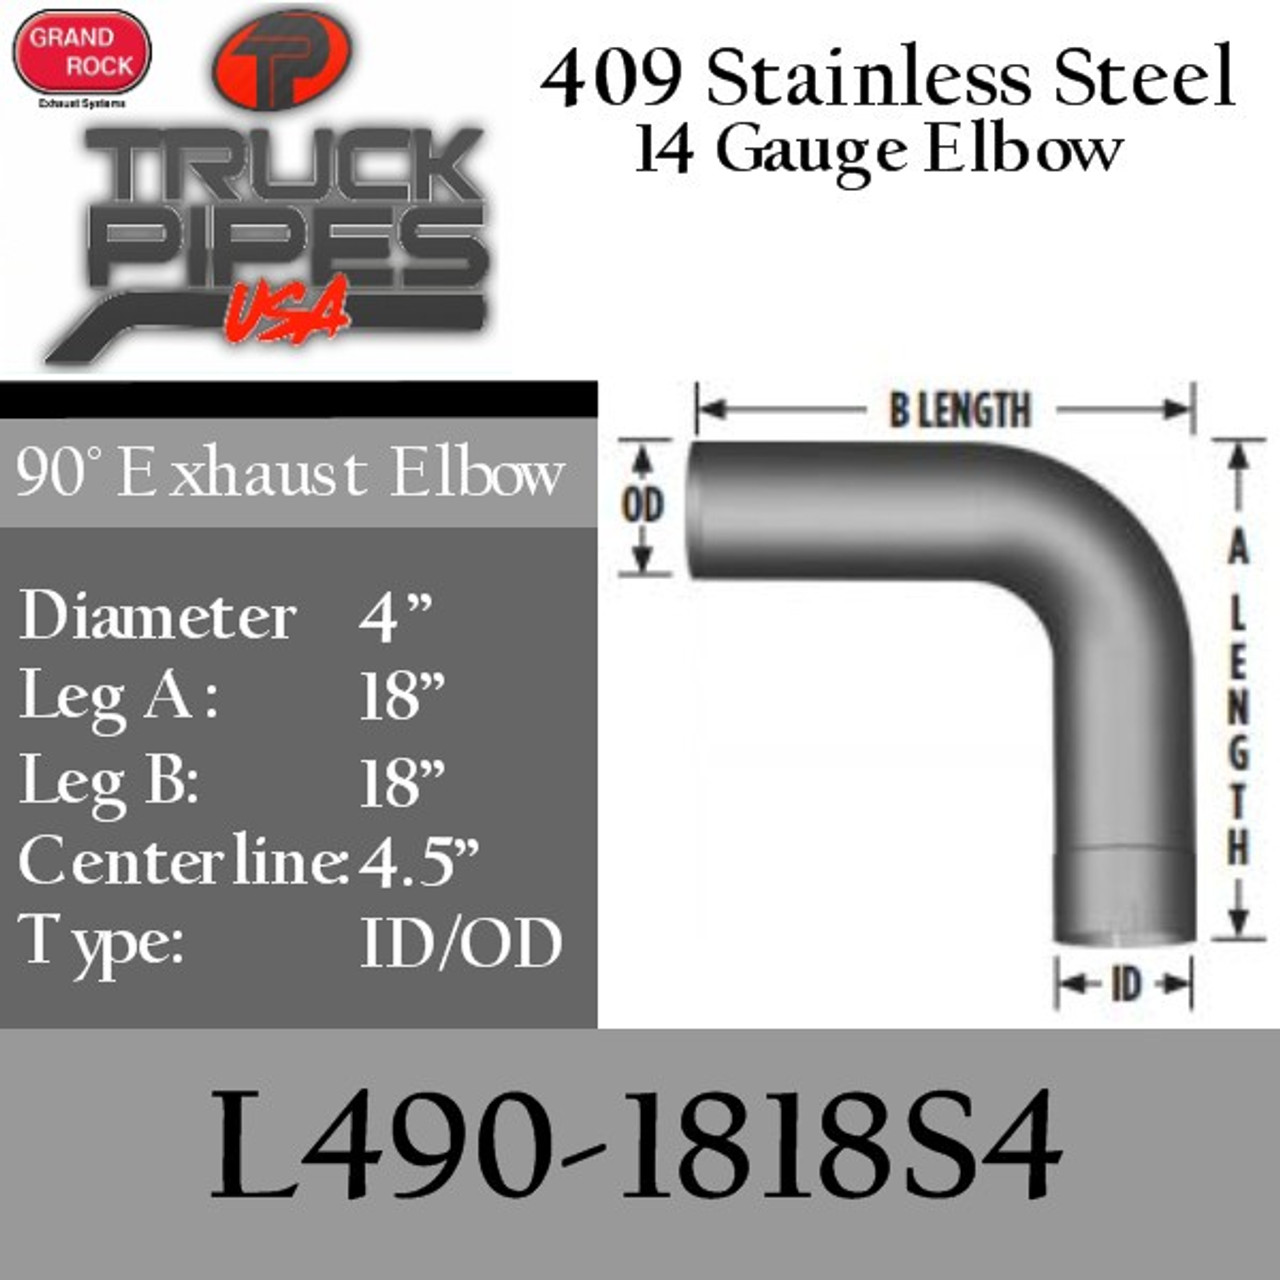 4 exhaust elbow 90 degree 18 x 18 id od 409 stainless steel l490 1818s4